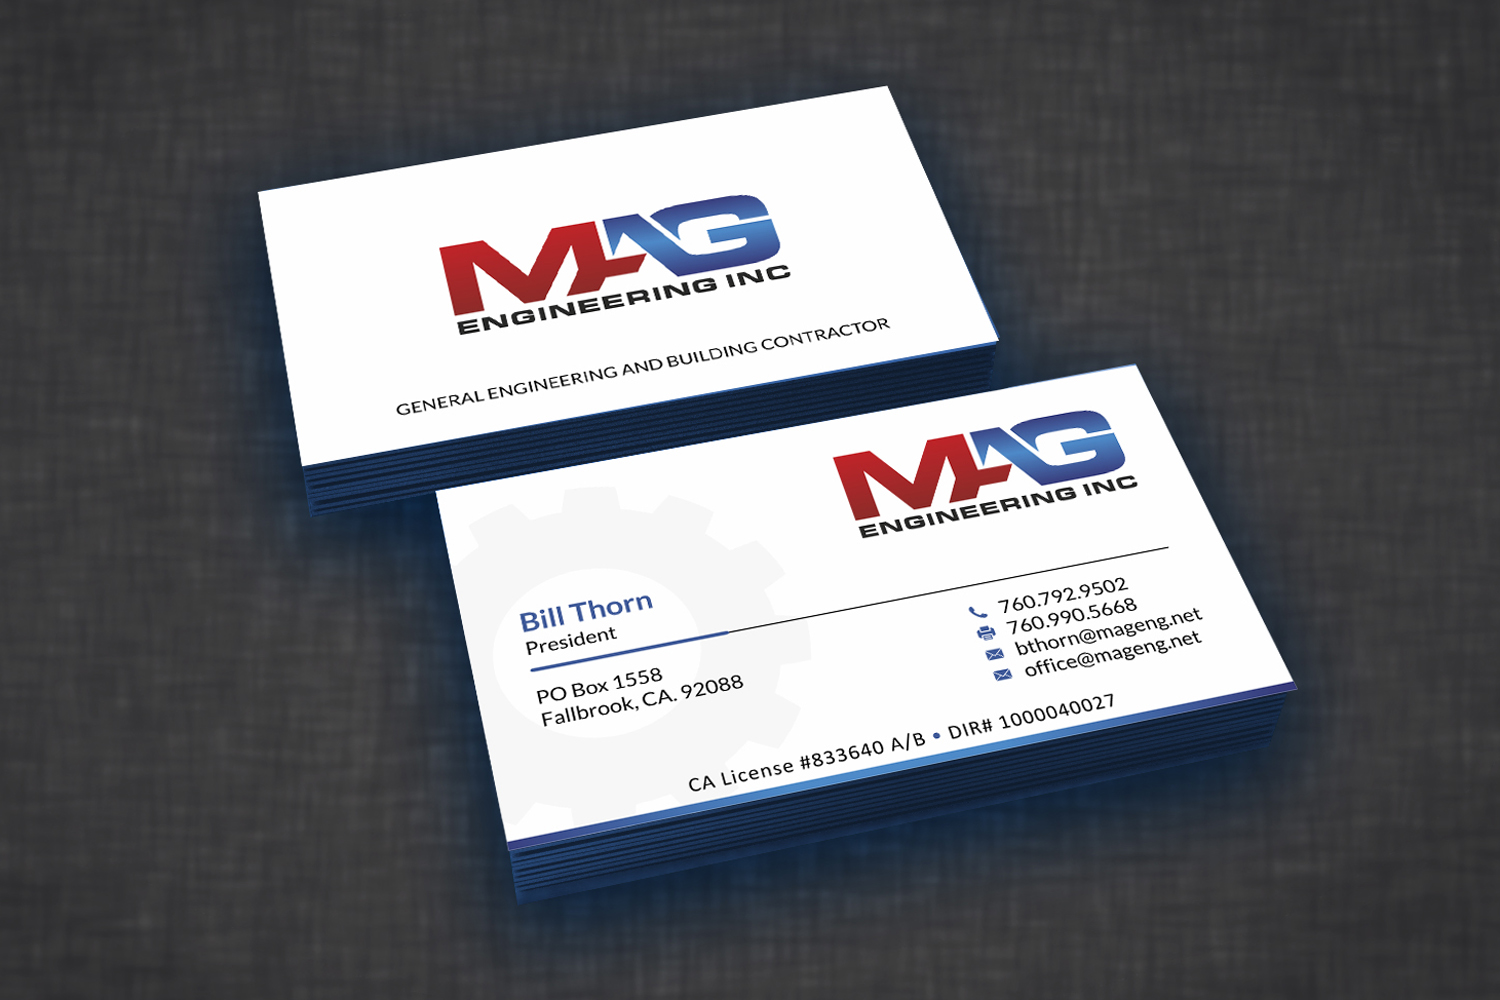 Business cards for mag engineering inc 110designs design for contest business cards for mag engineering inc reheart Choice Image